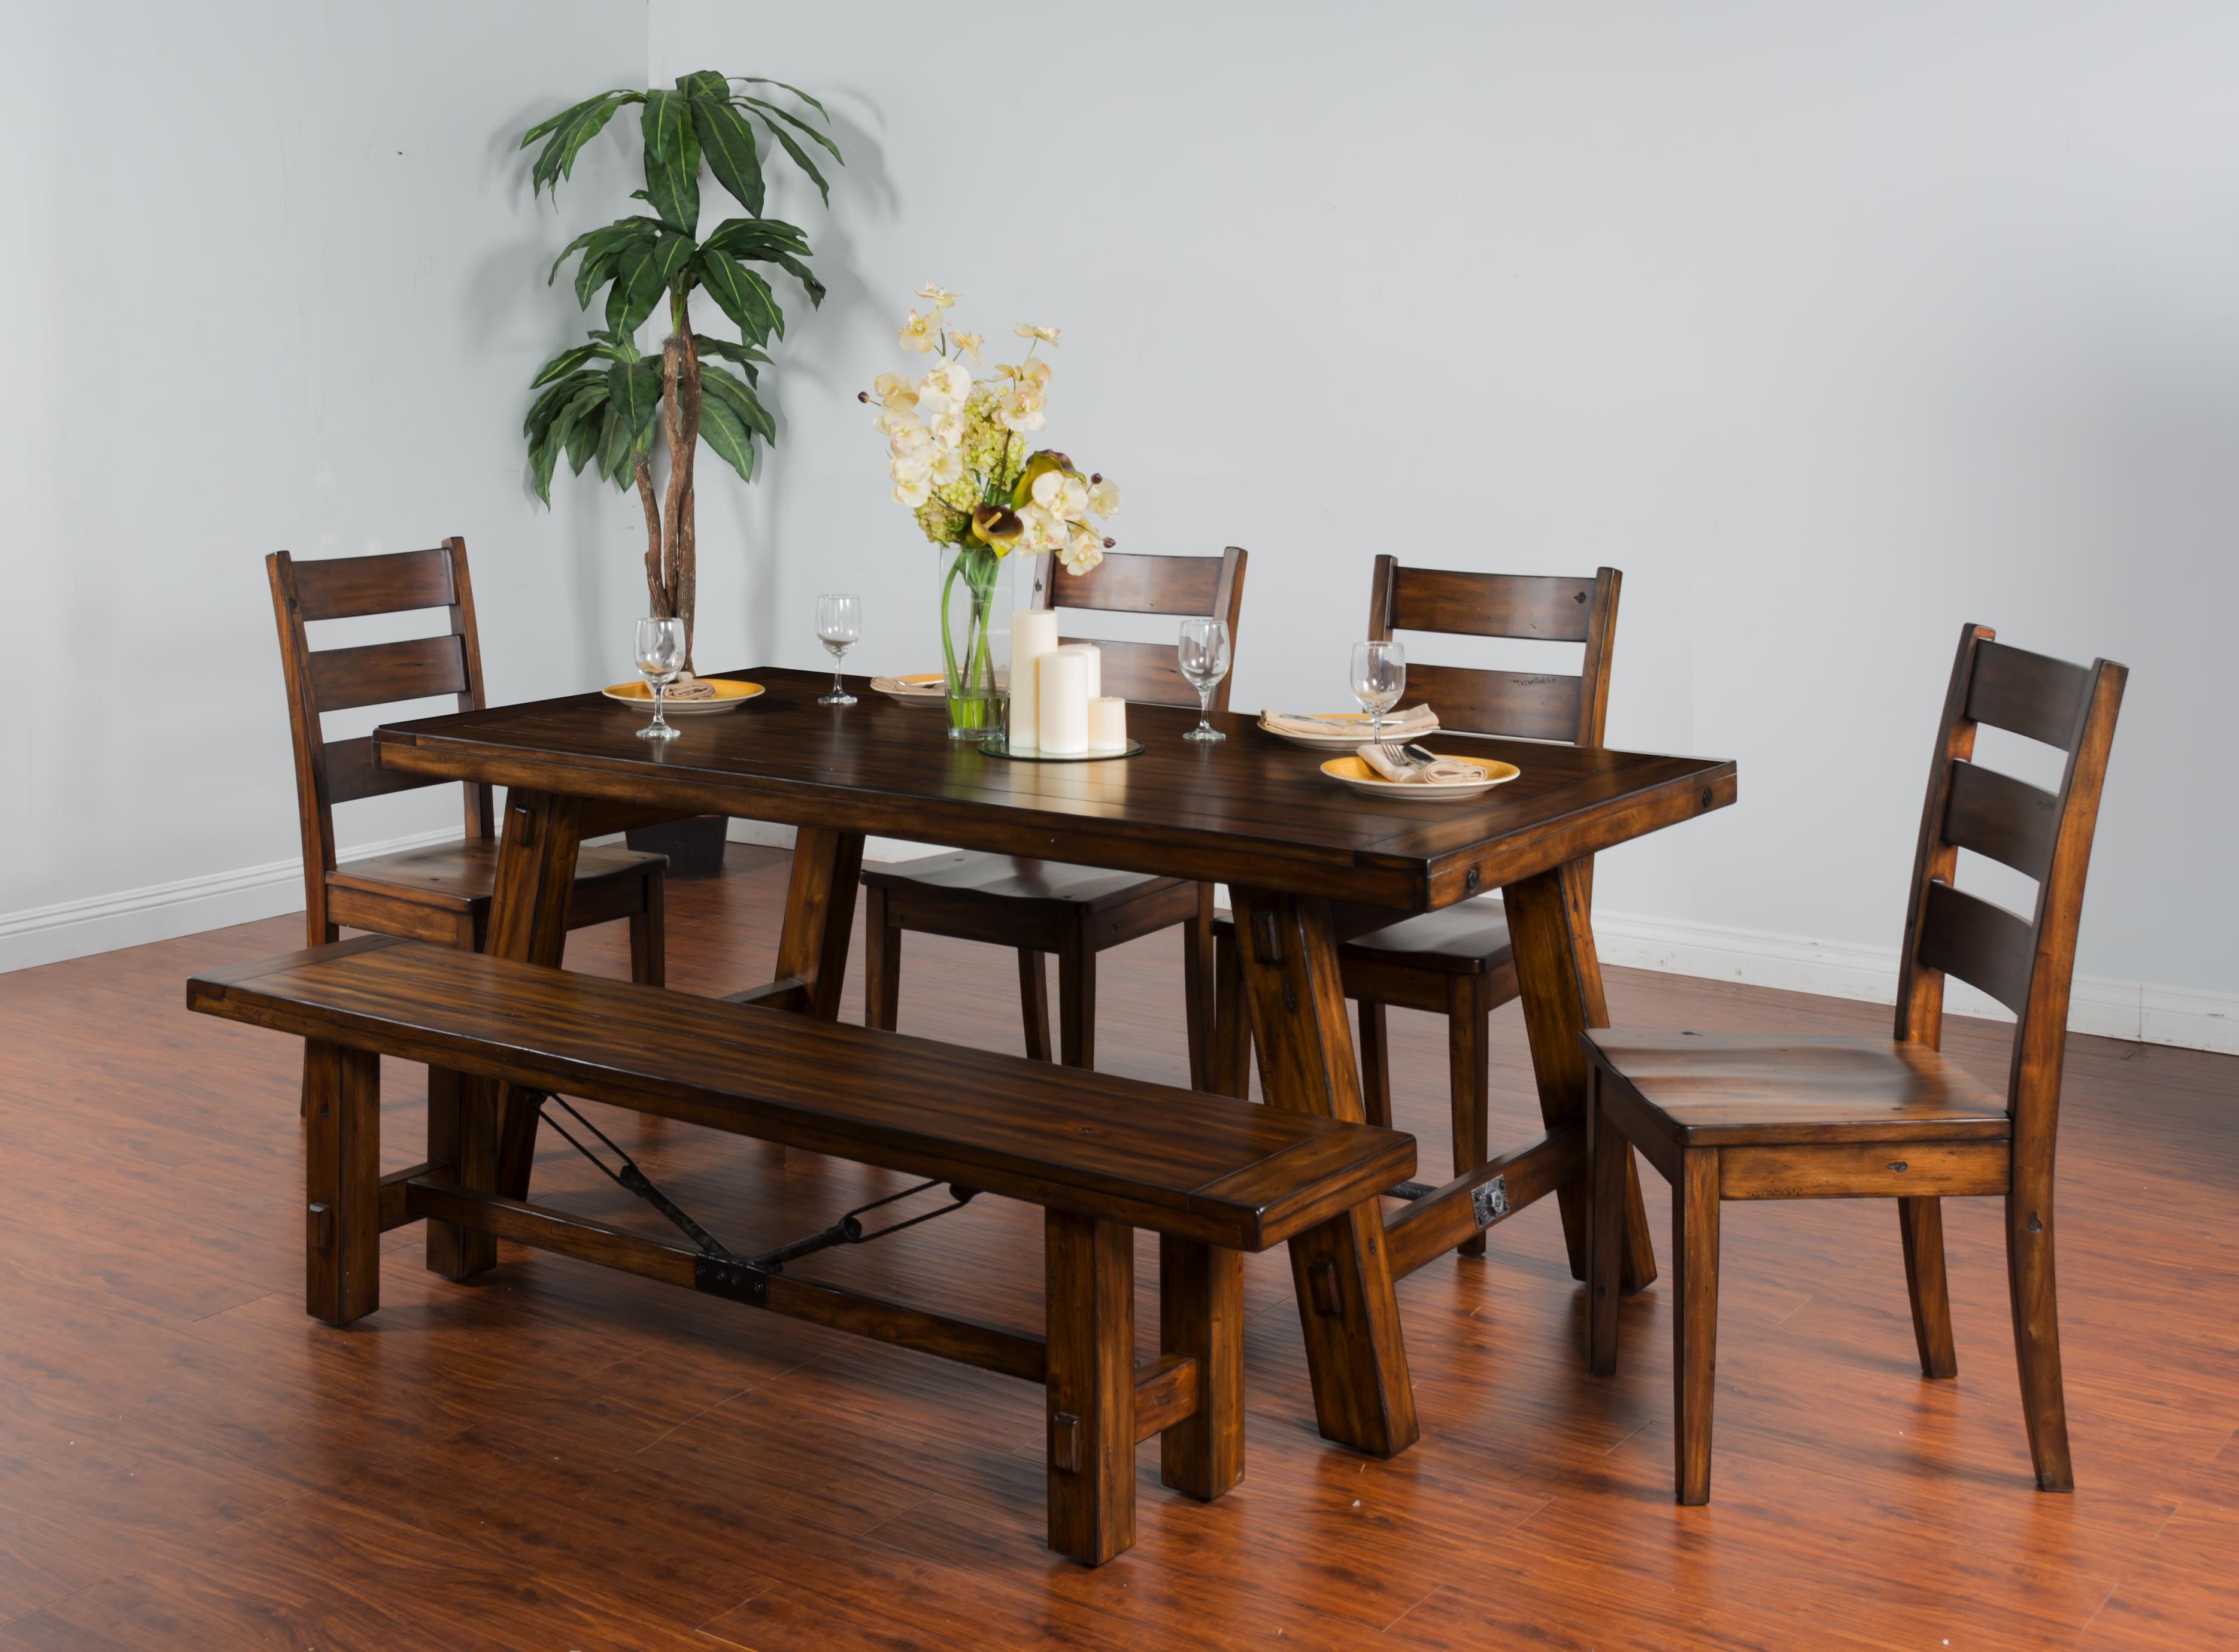 sunny designs tuscany 1380vm distressed mahogany extension table w turnbuckle accent. Black Bedroom Furniture Sets. Home Design Ideas